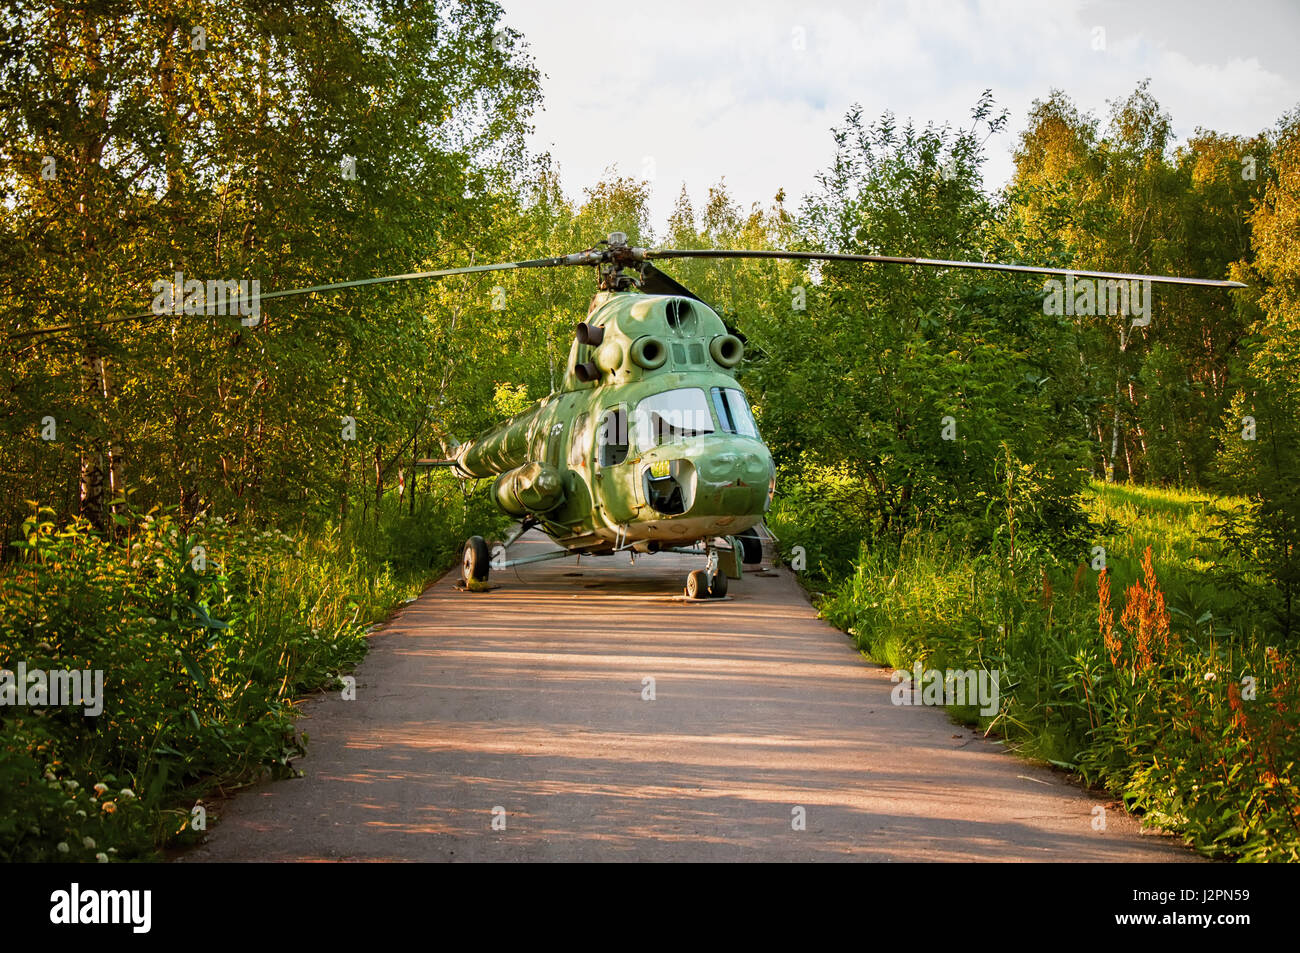 the helicopter made an emergency landing, the woods on the road on a Sunny day in summer - Stock Image